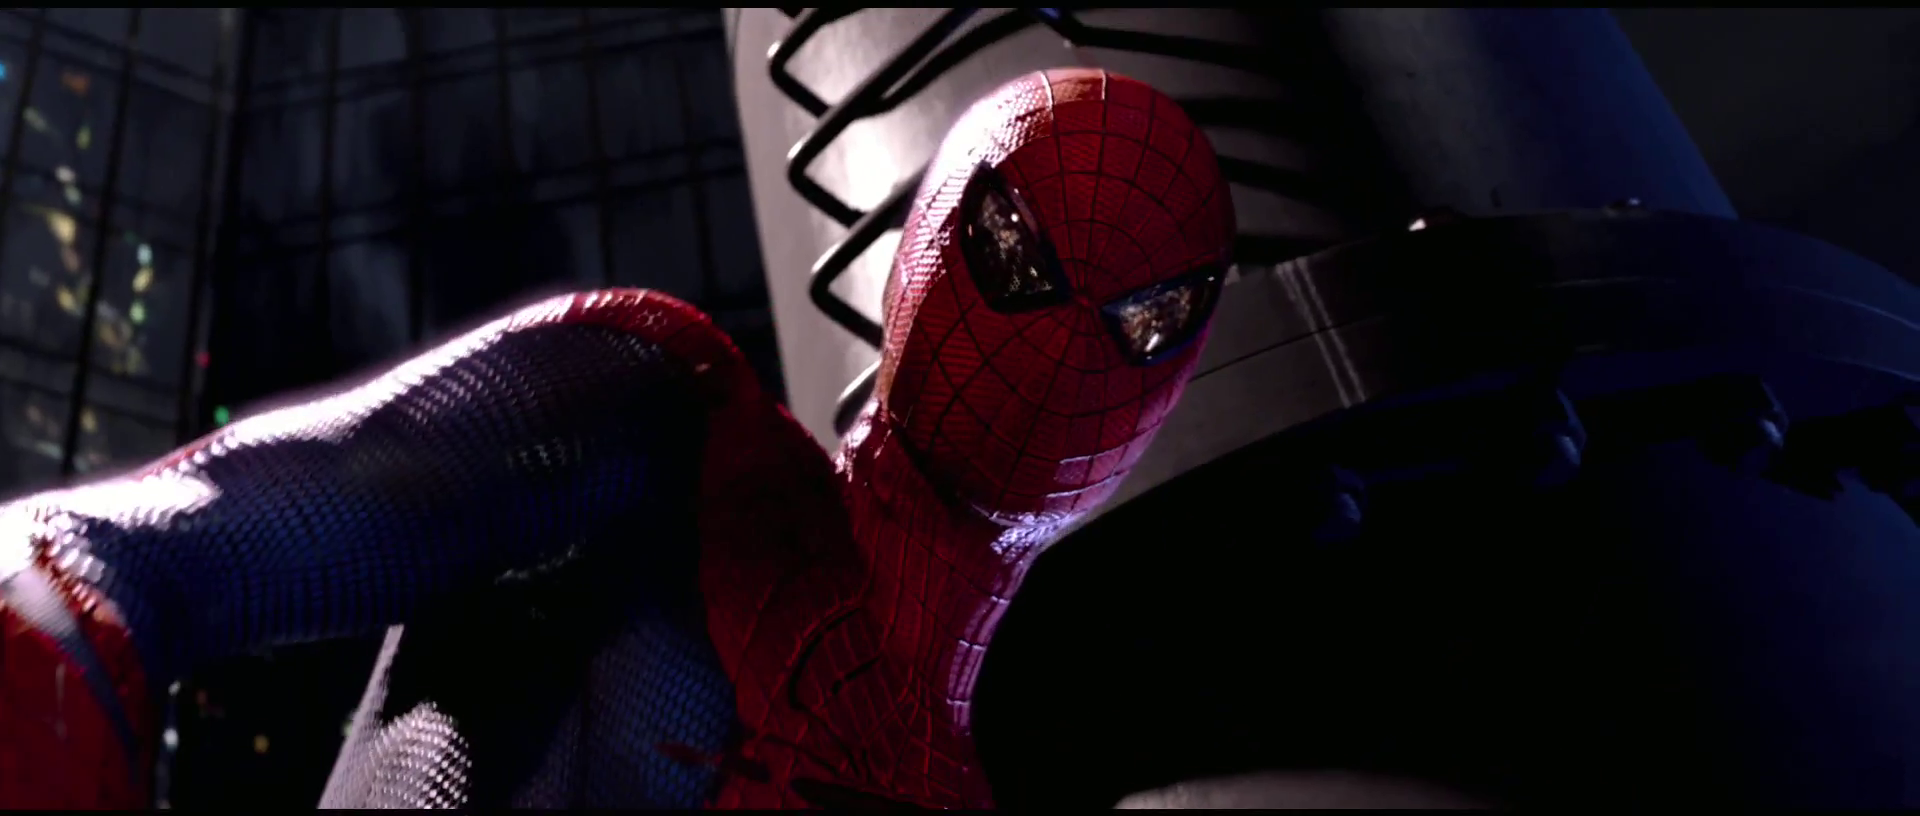 spiderman 3.png